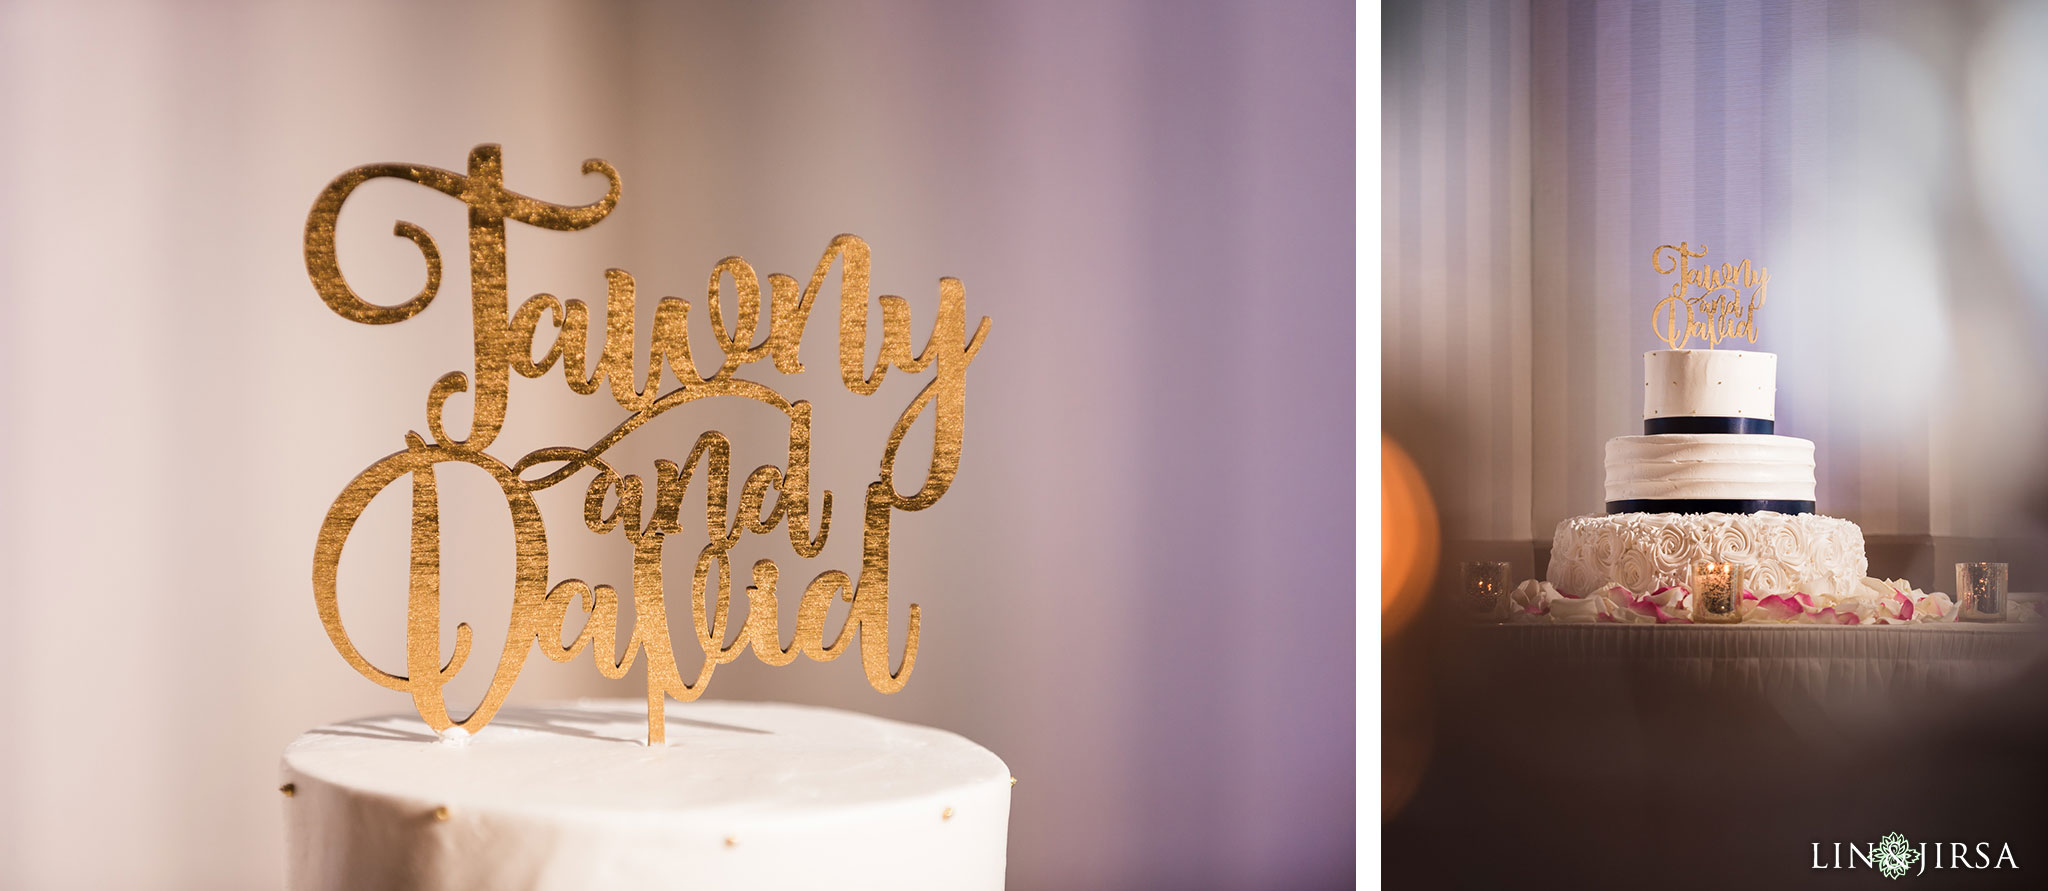 27 portofino hotel redondo beach wedding photography